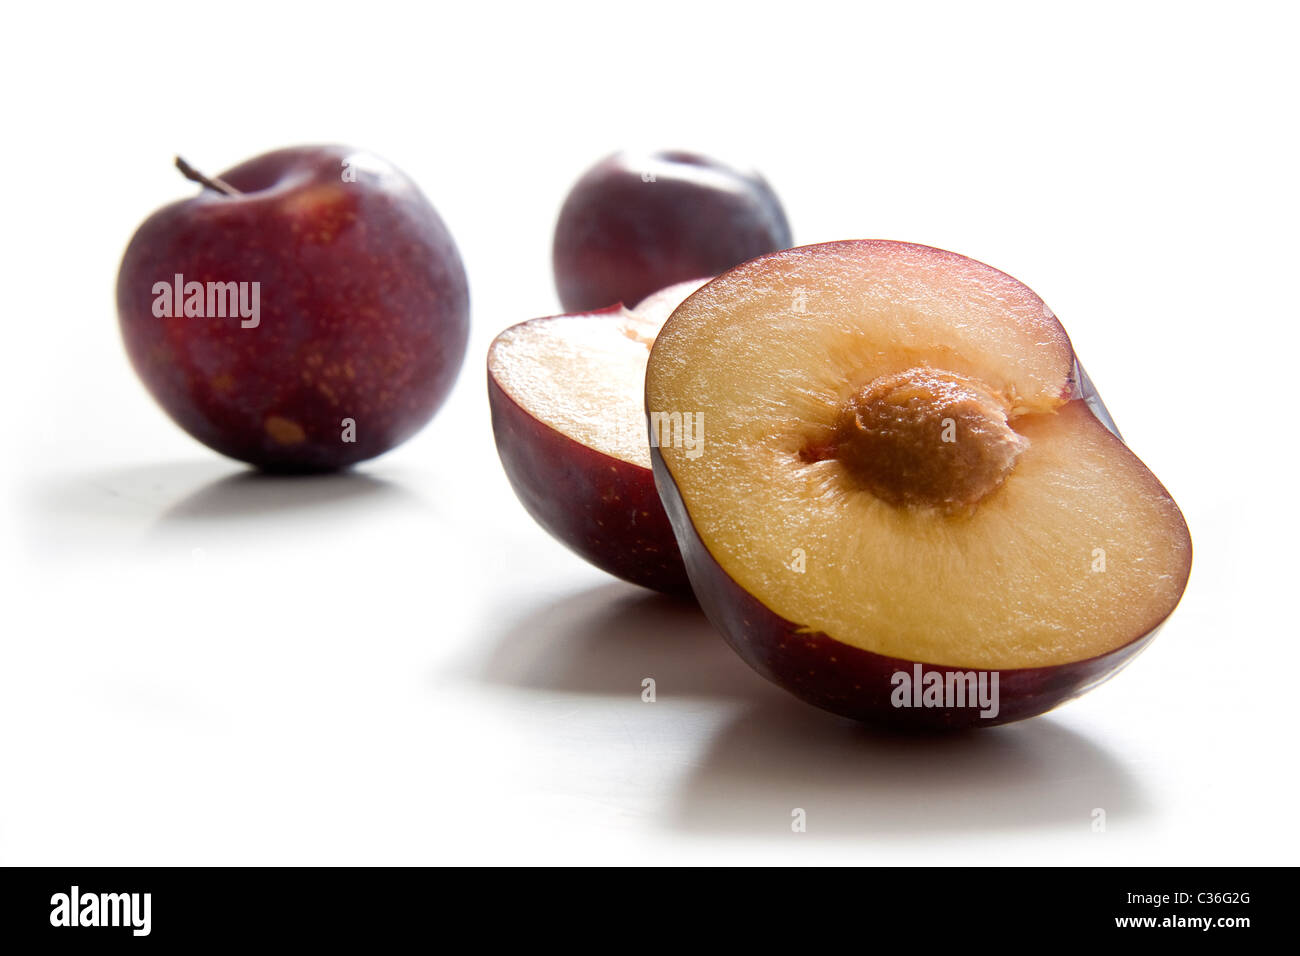 Two whole and half plums, variety Calita - Stock Image